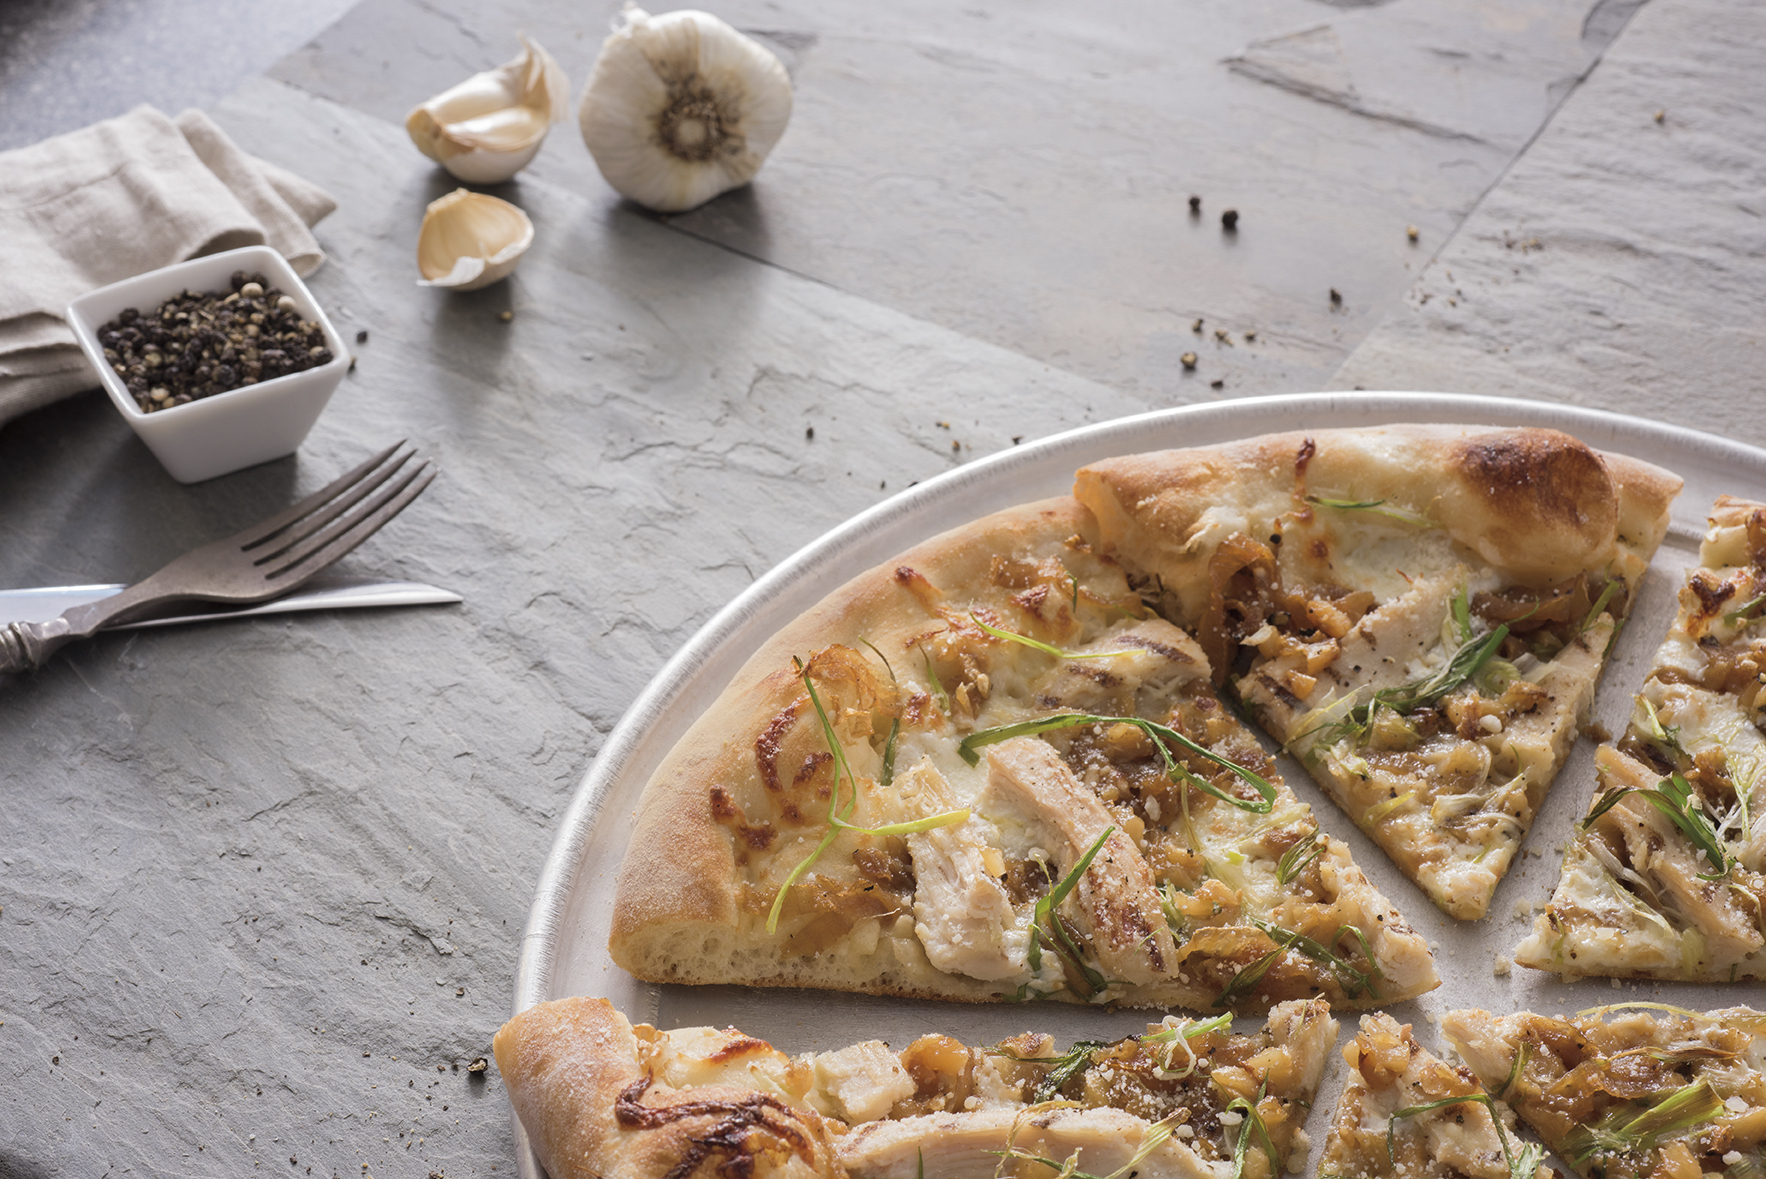 california pizza kitchen celebrates national pizza month with the